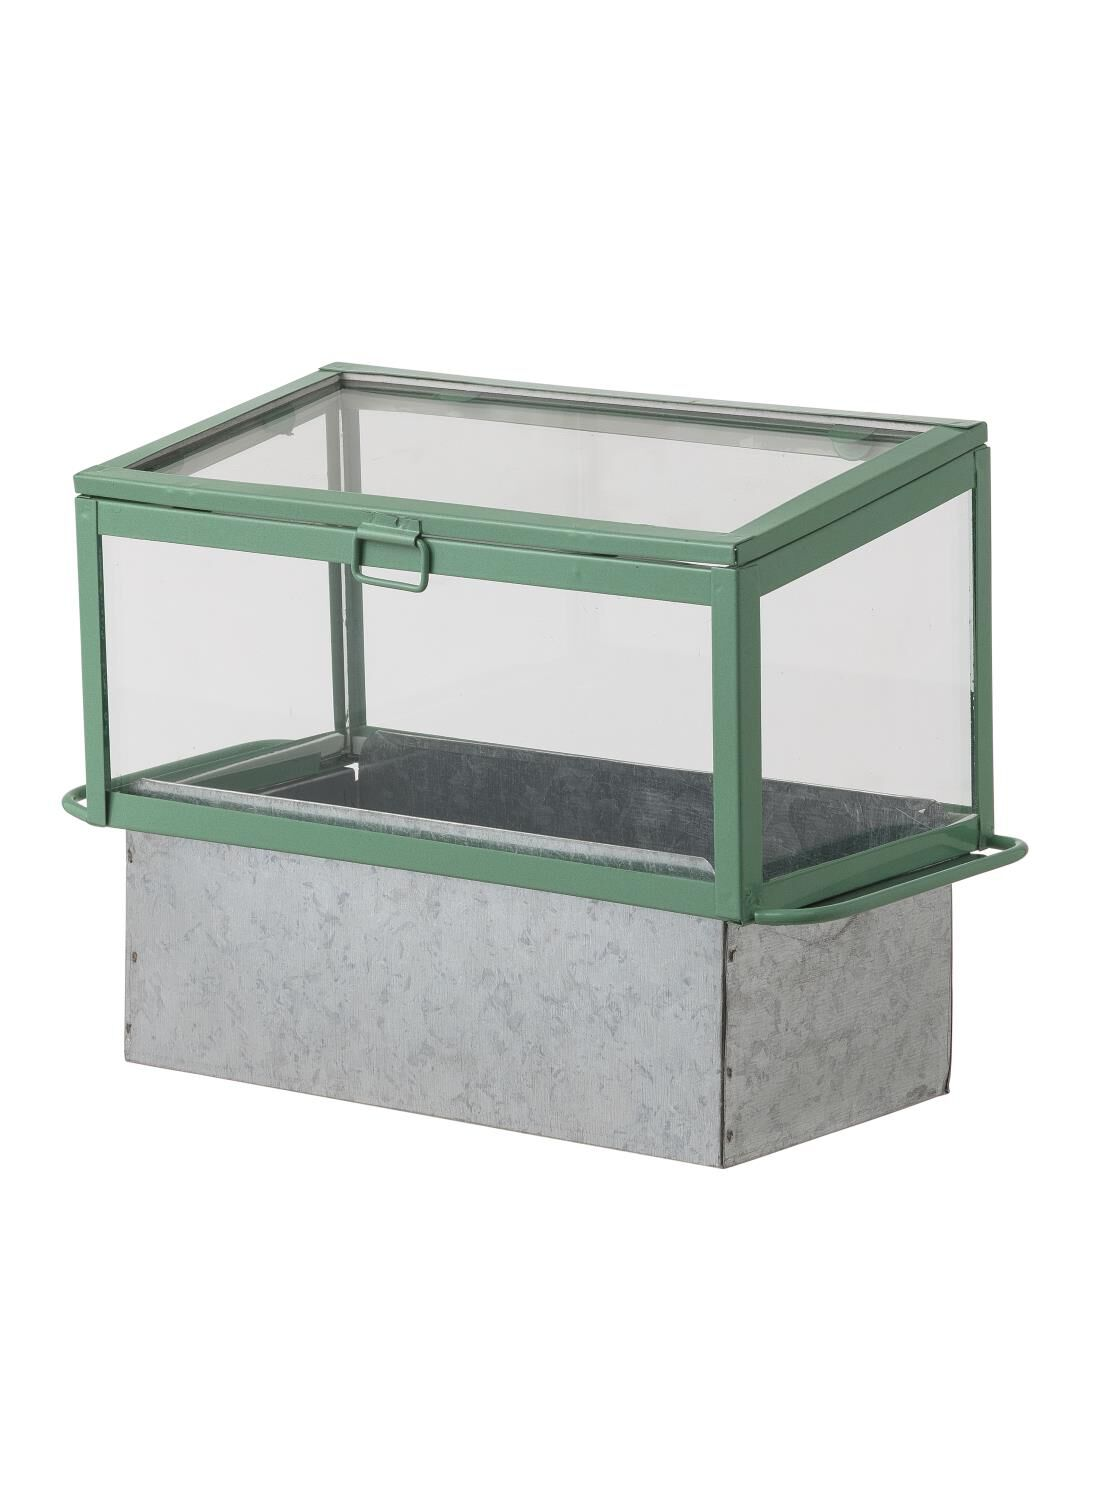 Handson Kweekkas Serre Small Indoor Greenhouse 25 X 12 5 X 11 Cm